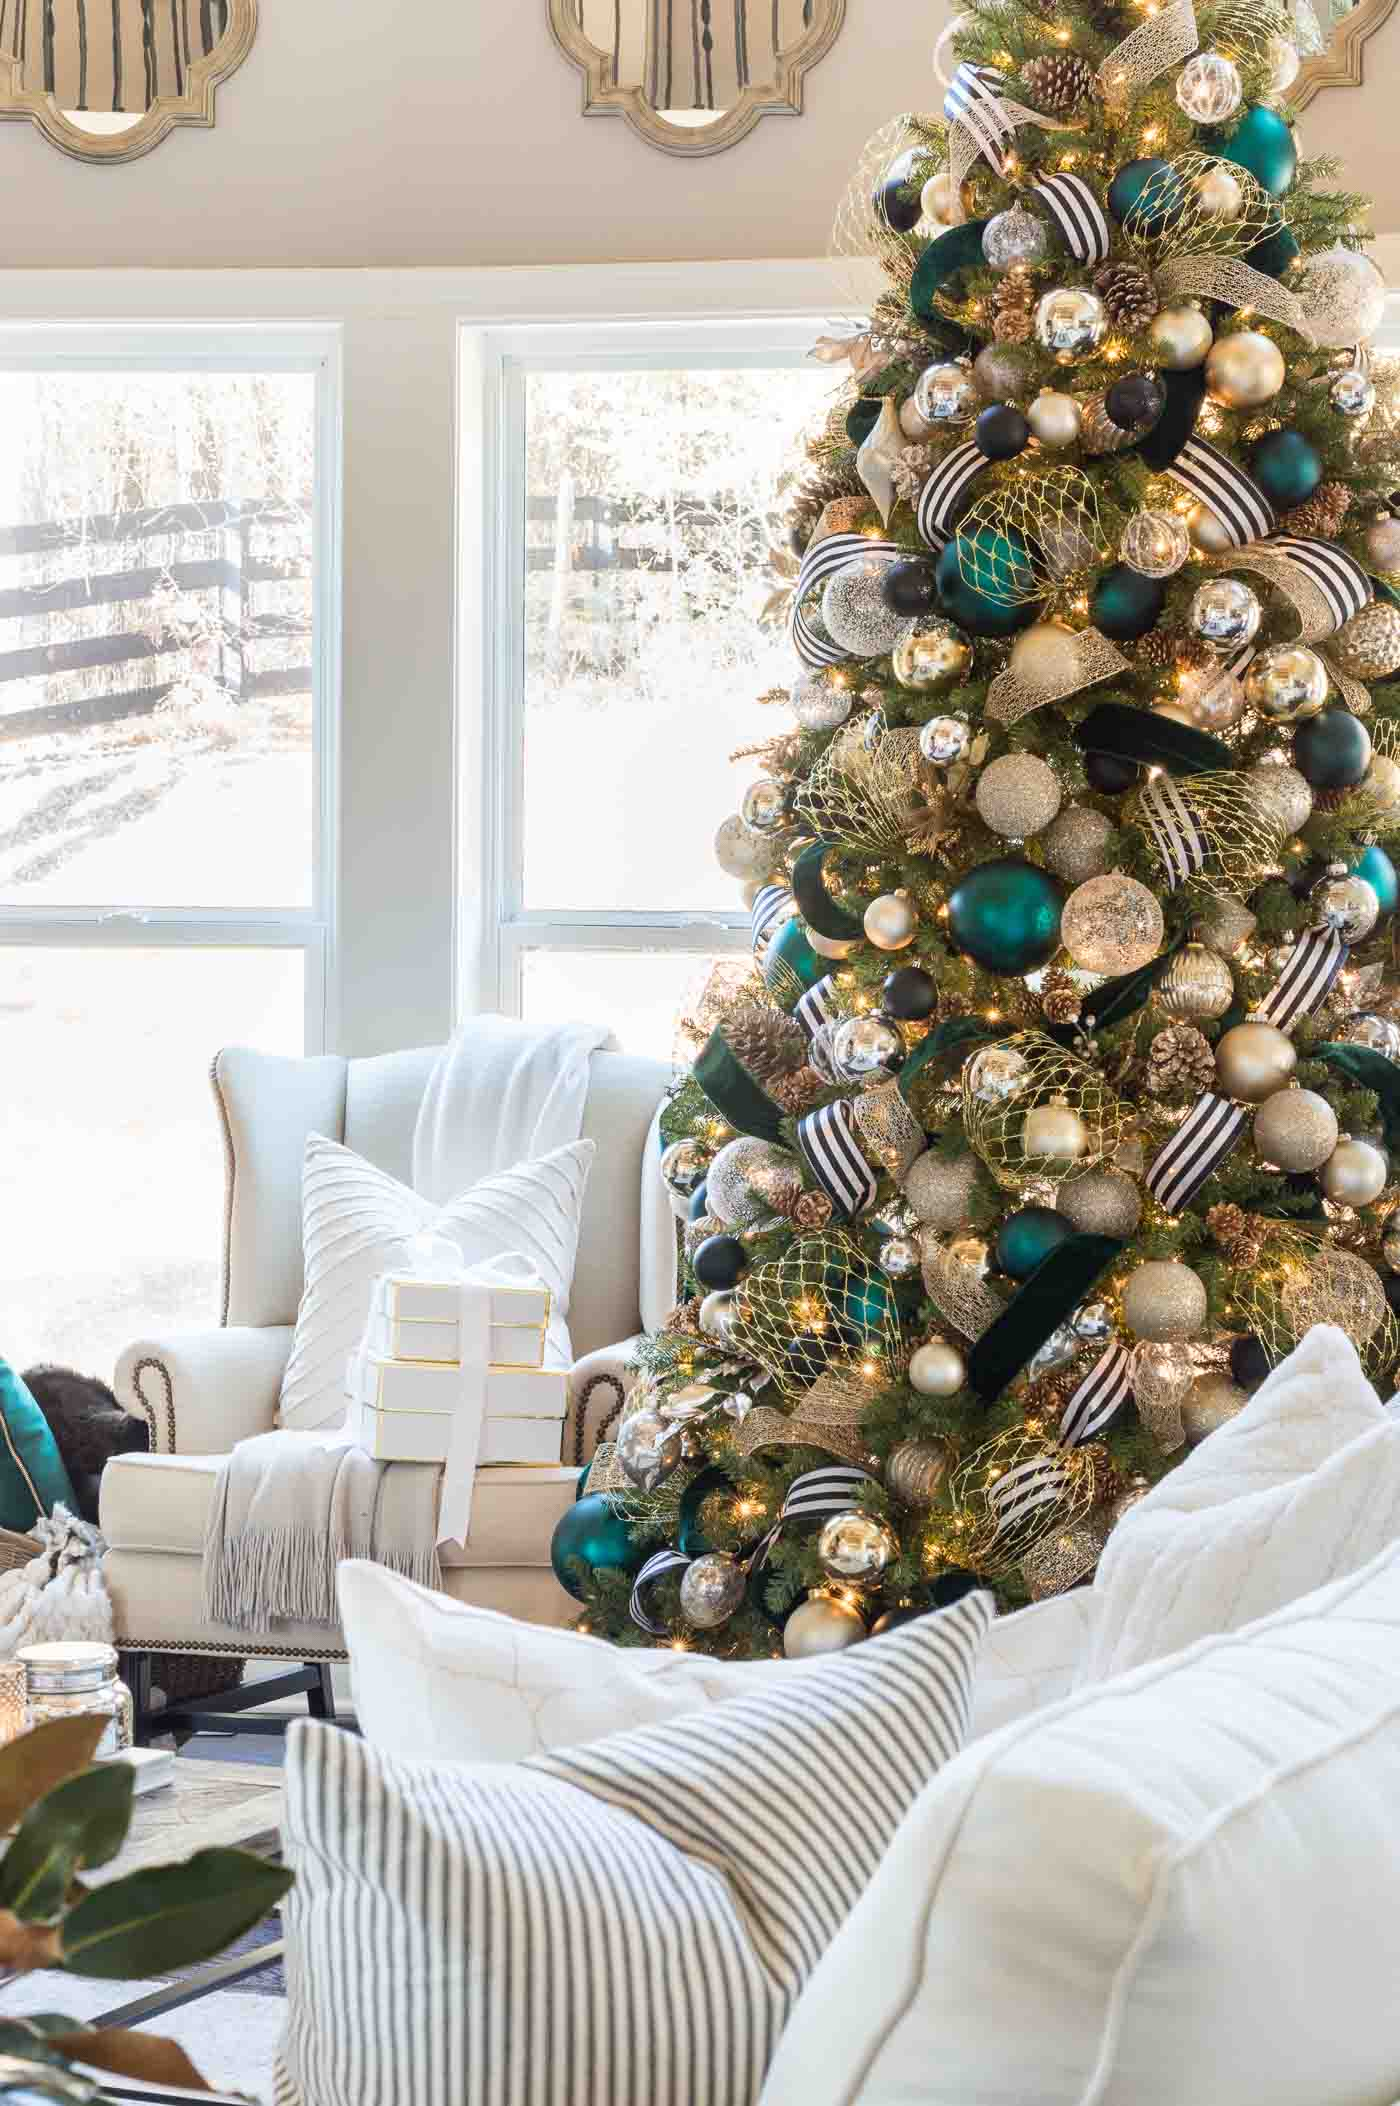 Christmas tree decorations and ideas to trim a Christmas tree